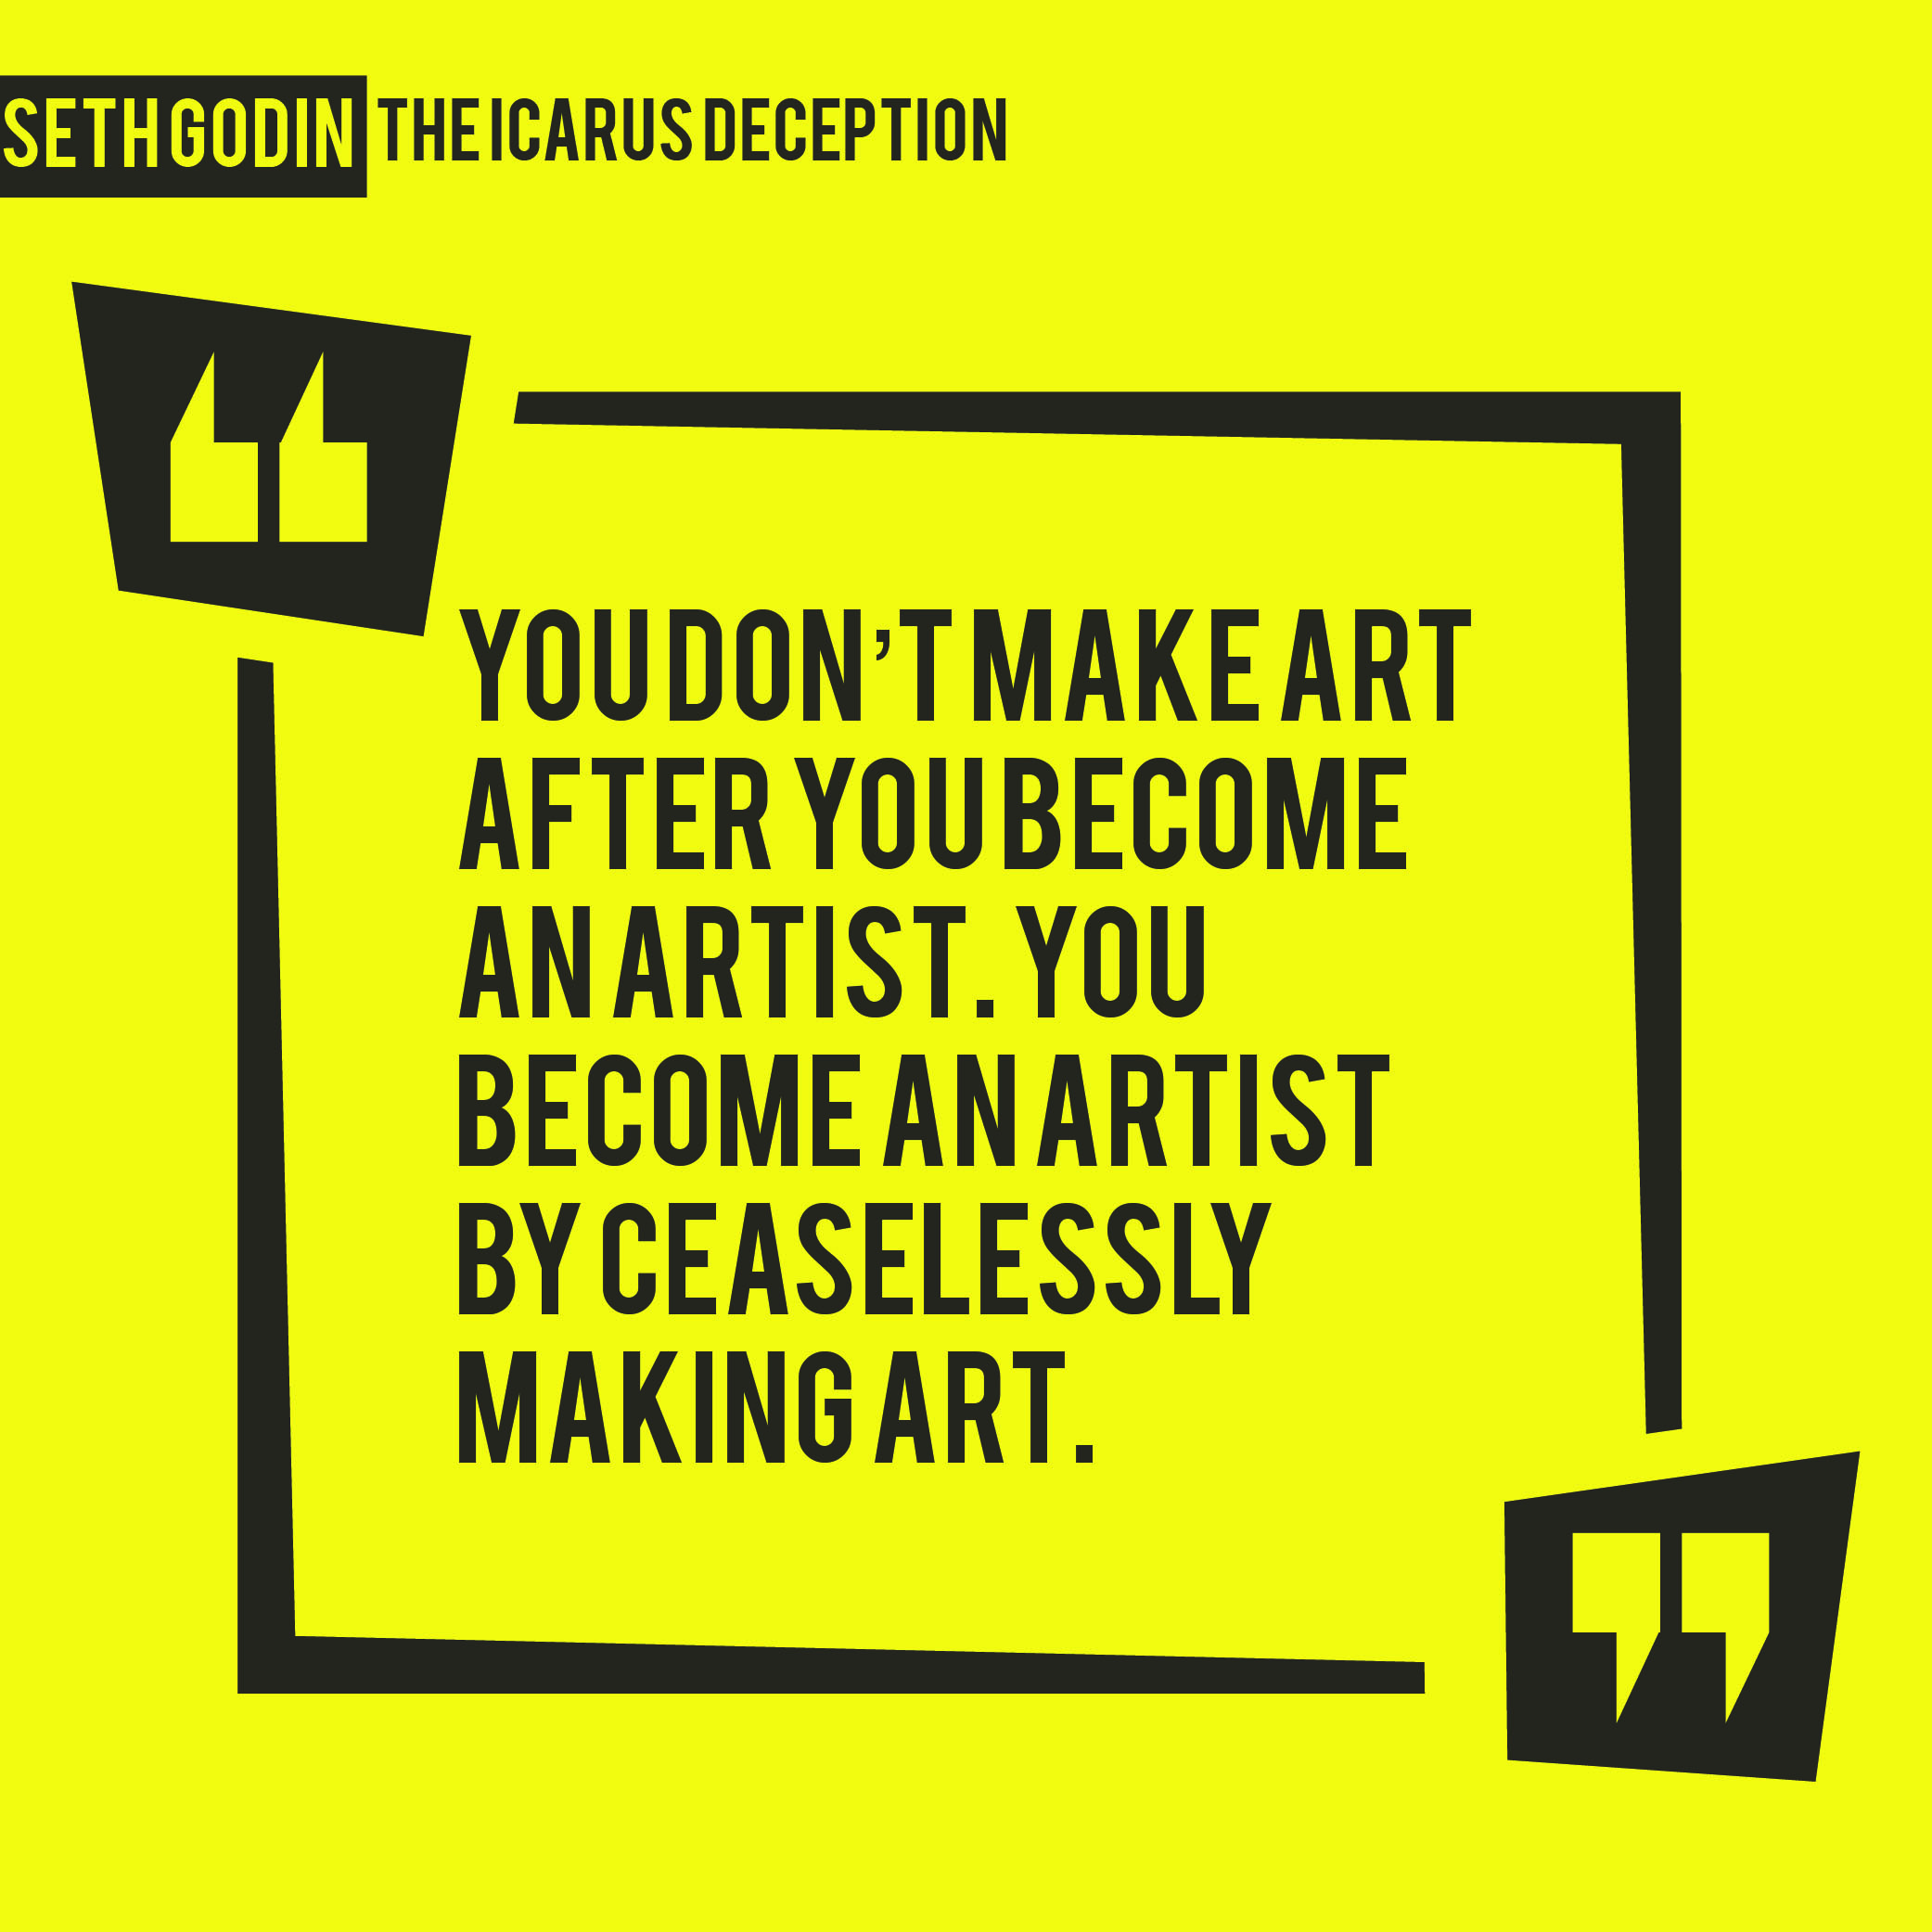 you don't-make-art-after-you-become-an-artist.-You-become-an-artist-by-ceaselessly-making-art